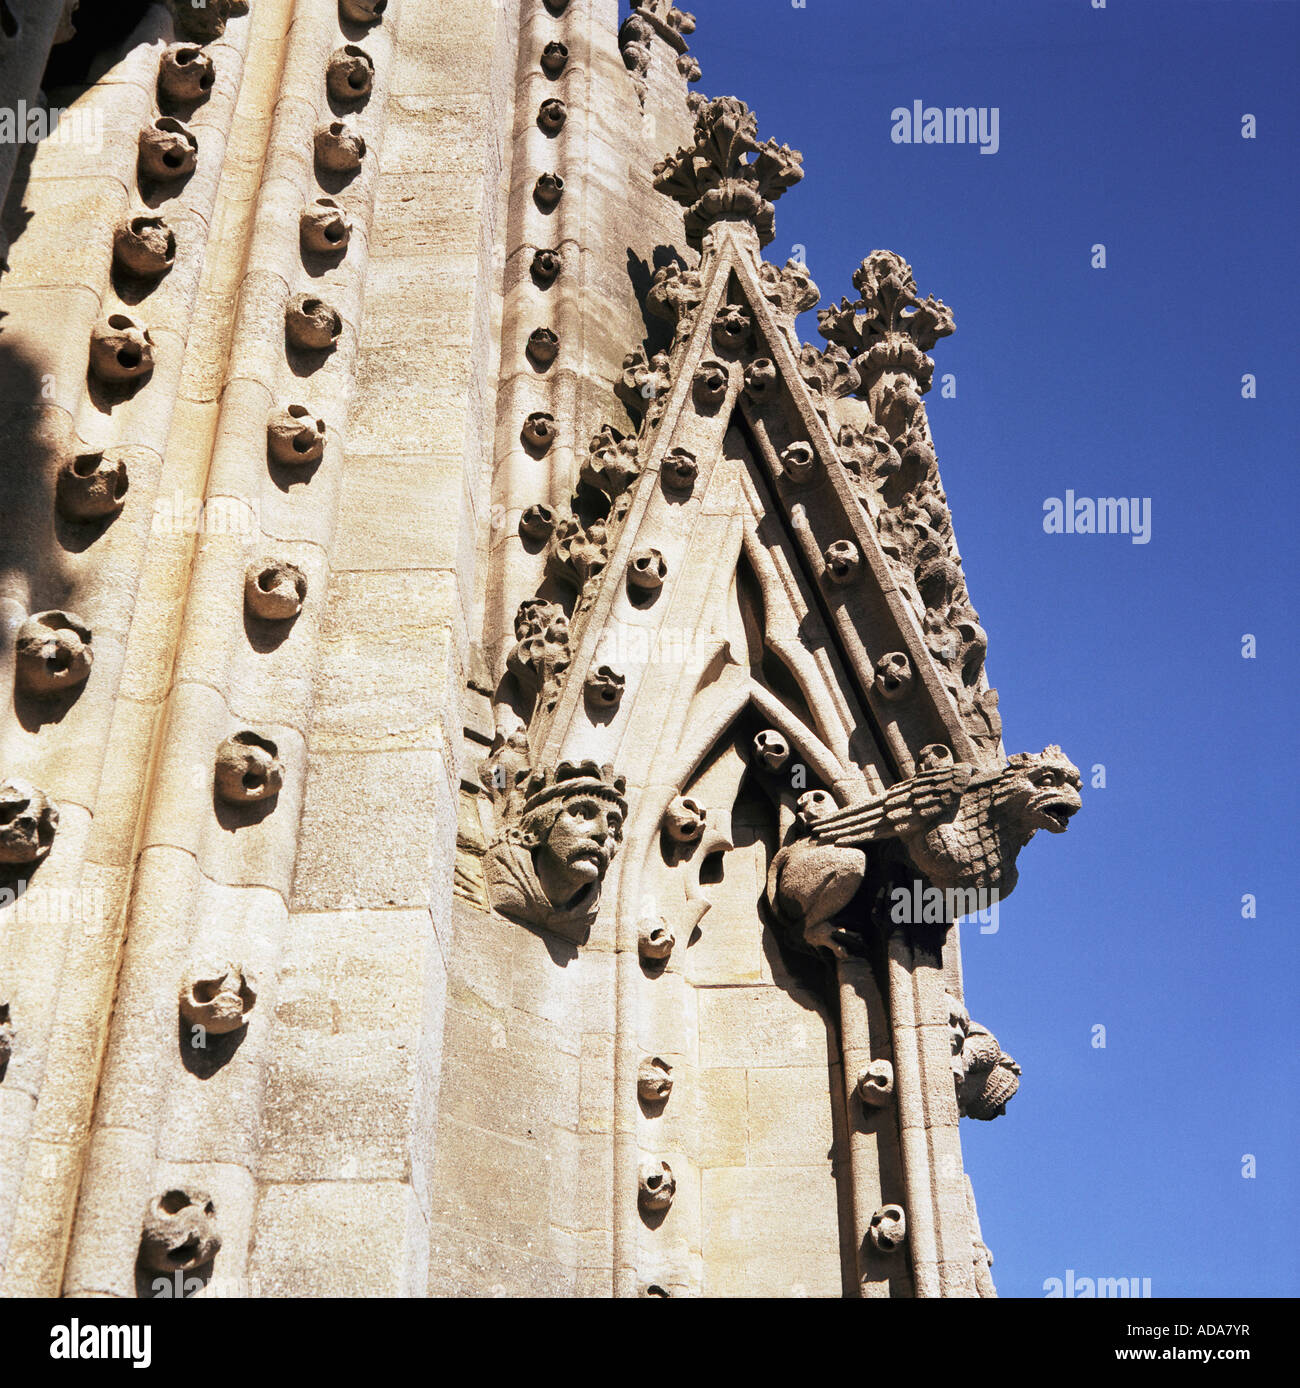 Detail on St Mary s Church Tower in Radcliffe Square, Oxford, England, UK - Stock Image